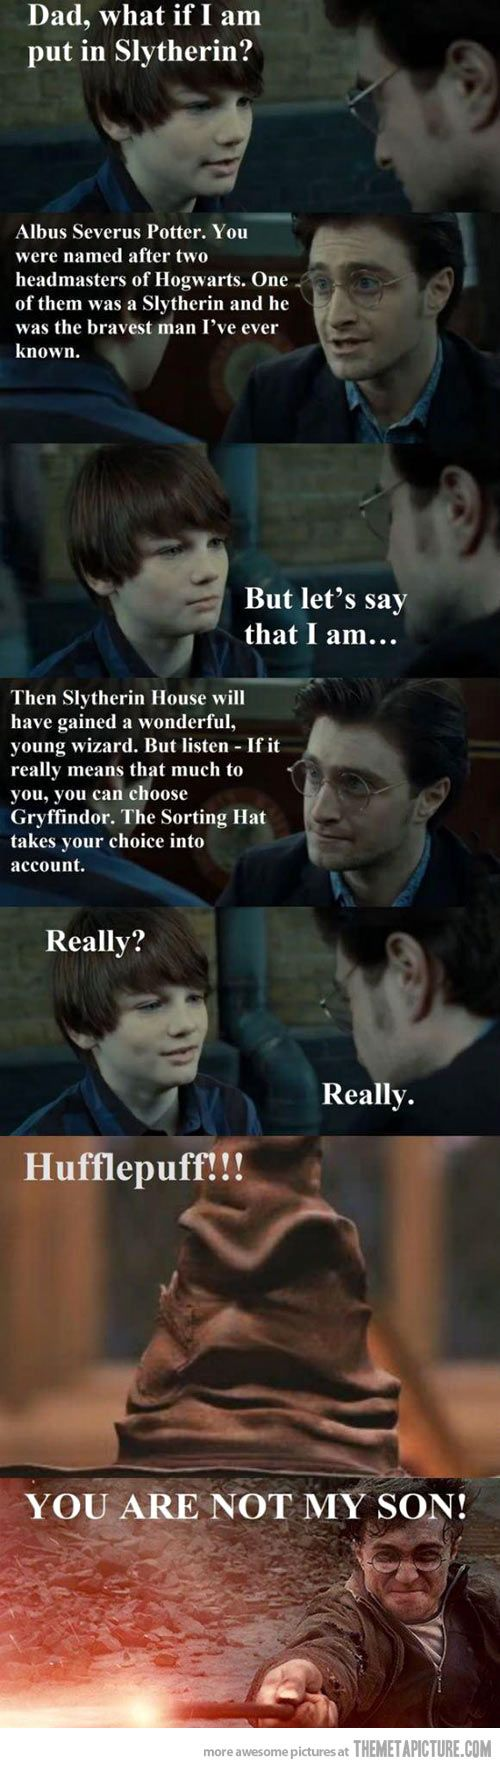 """What If I'm Put In Slytherin?"" A funny parody involving Harry's son Albus, after that heart-to-heart Father-Son talk at the end of the series..."